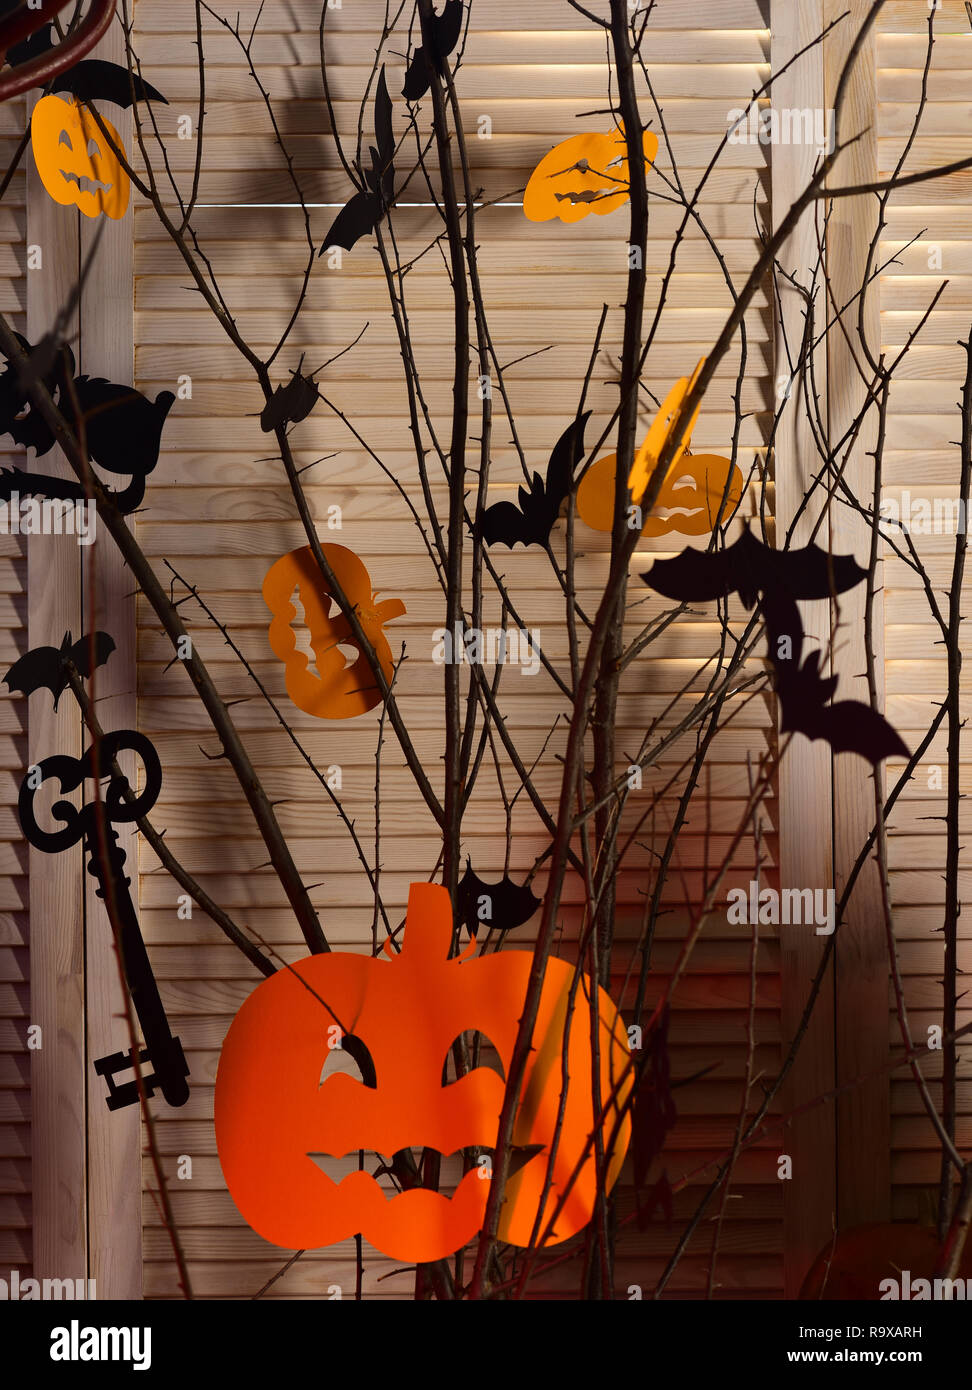 Halloween Party Decorations Halloween Symbols Hang On Tree